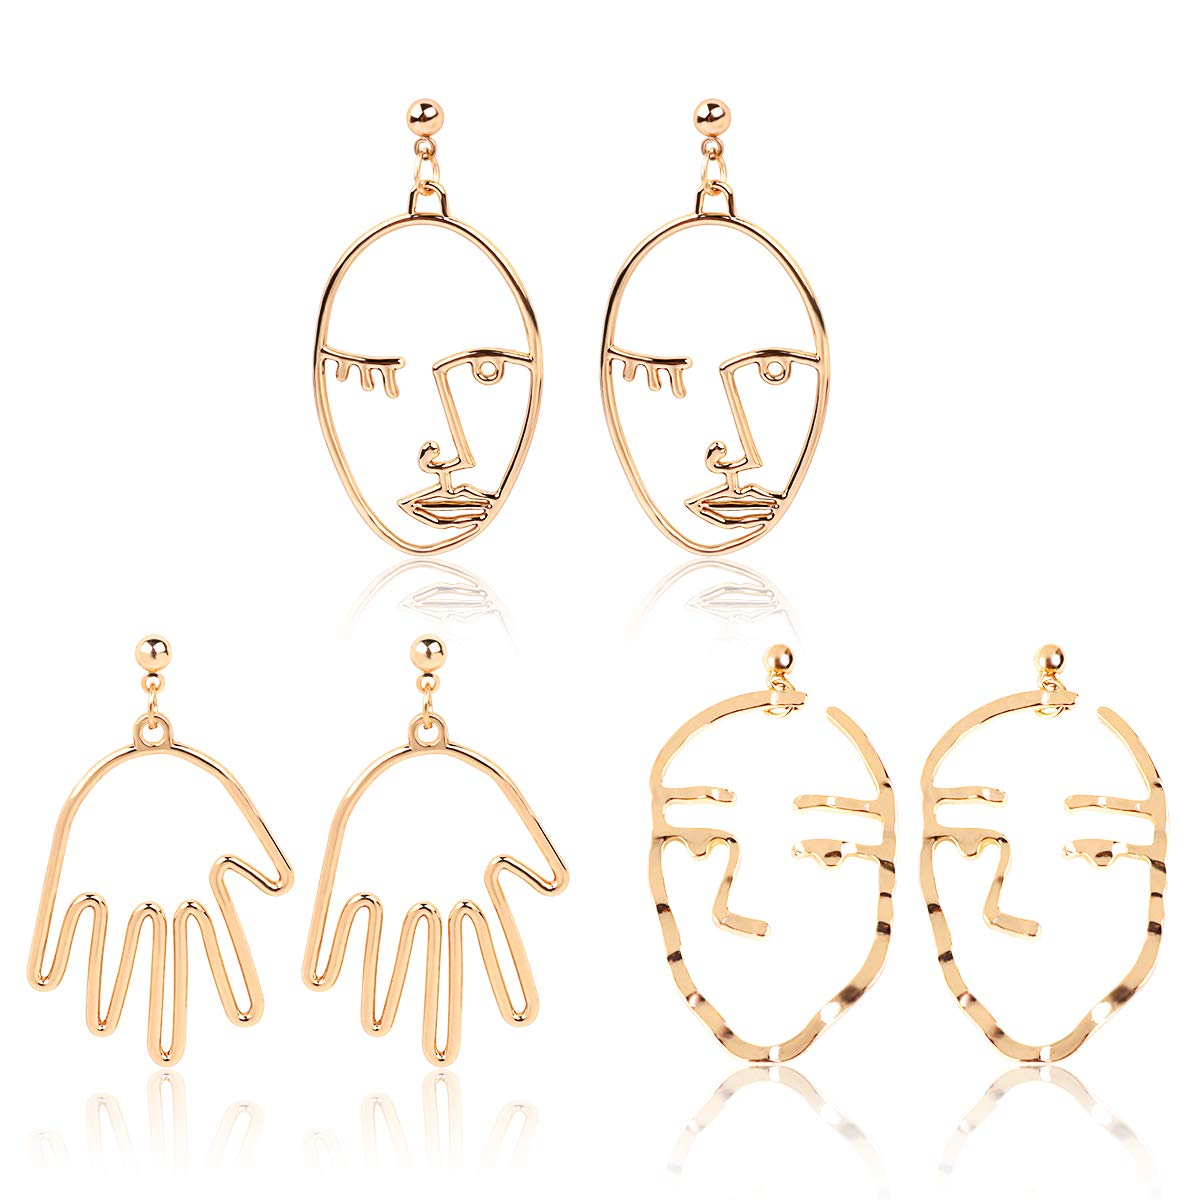 Face Earring Set-ikooo 3 Pair Gold Tone Hypoallergenic Earrings for Girls Teens Women Earrings Including Hollow Face Hand Shape Gold Statement Earrings by Ikooo (Image #1)